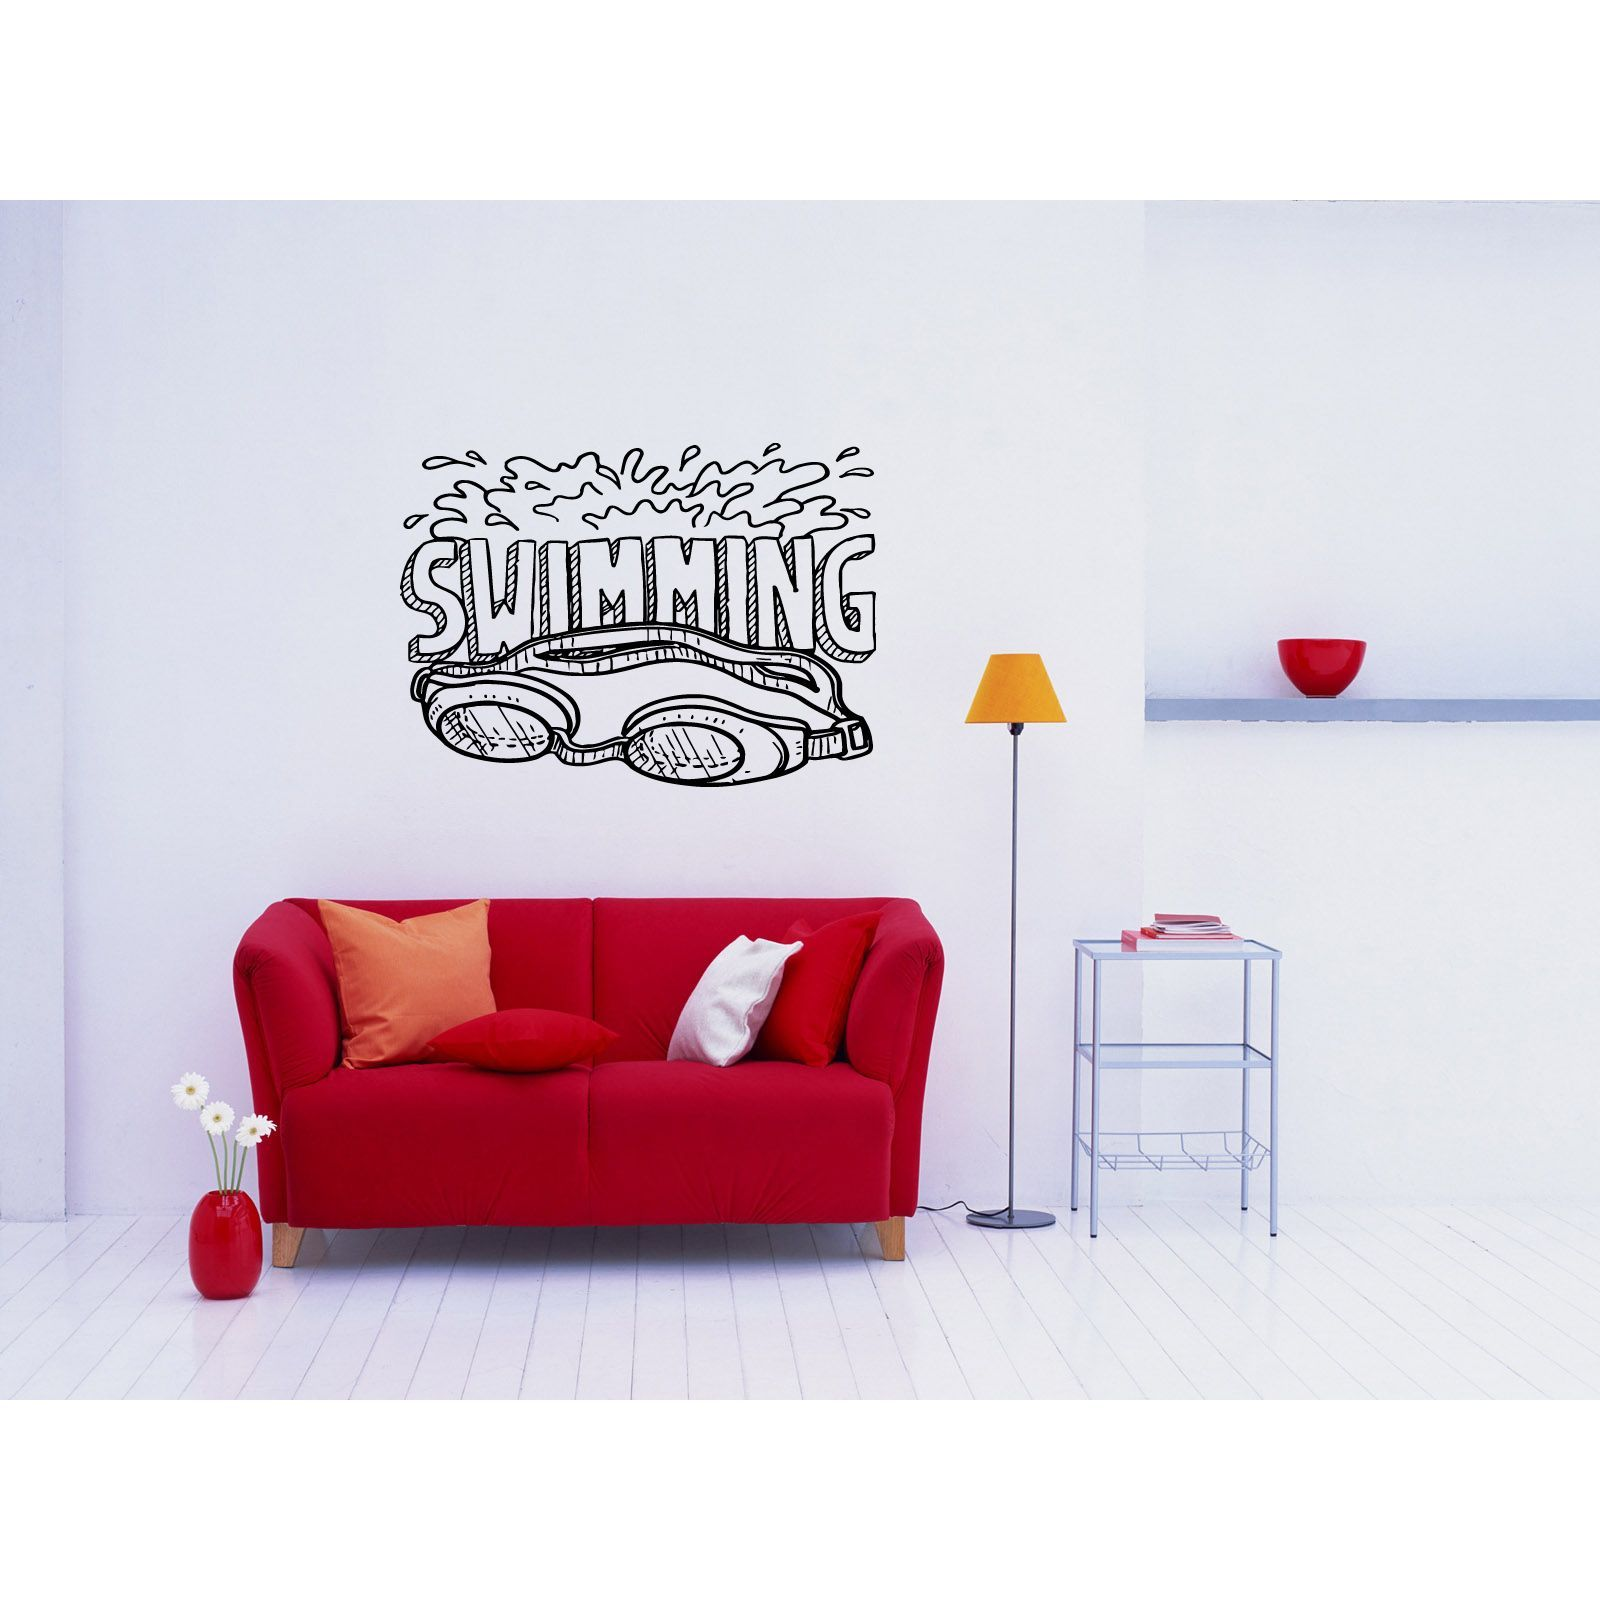 I Am A Swimmer Wall Decal Removable Swimming Wall Art Sticker Lettering Quote